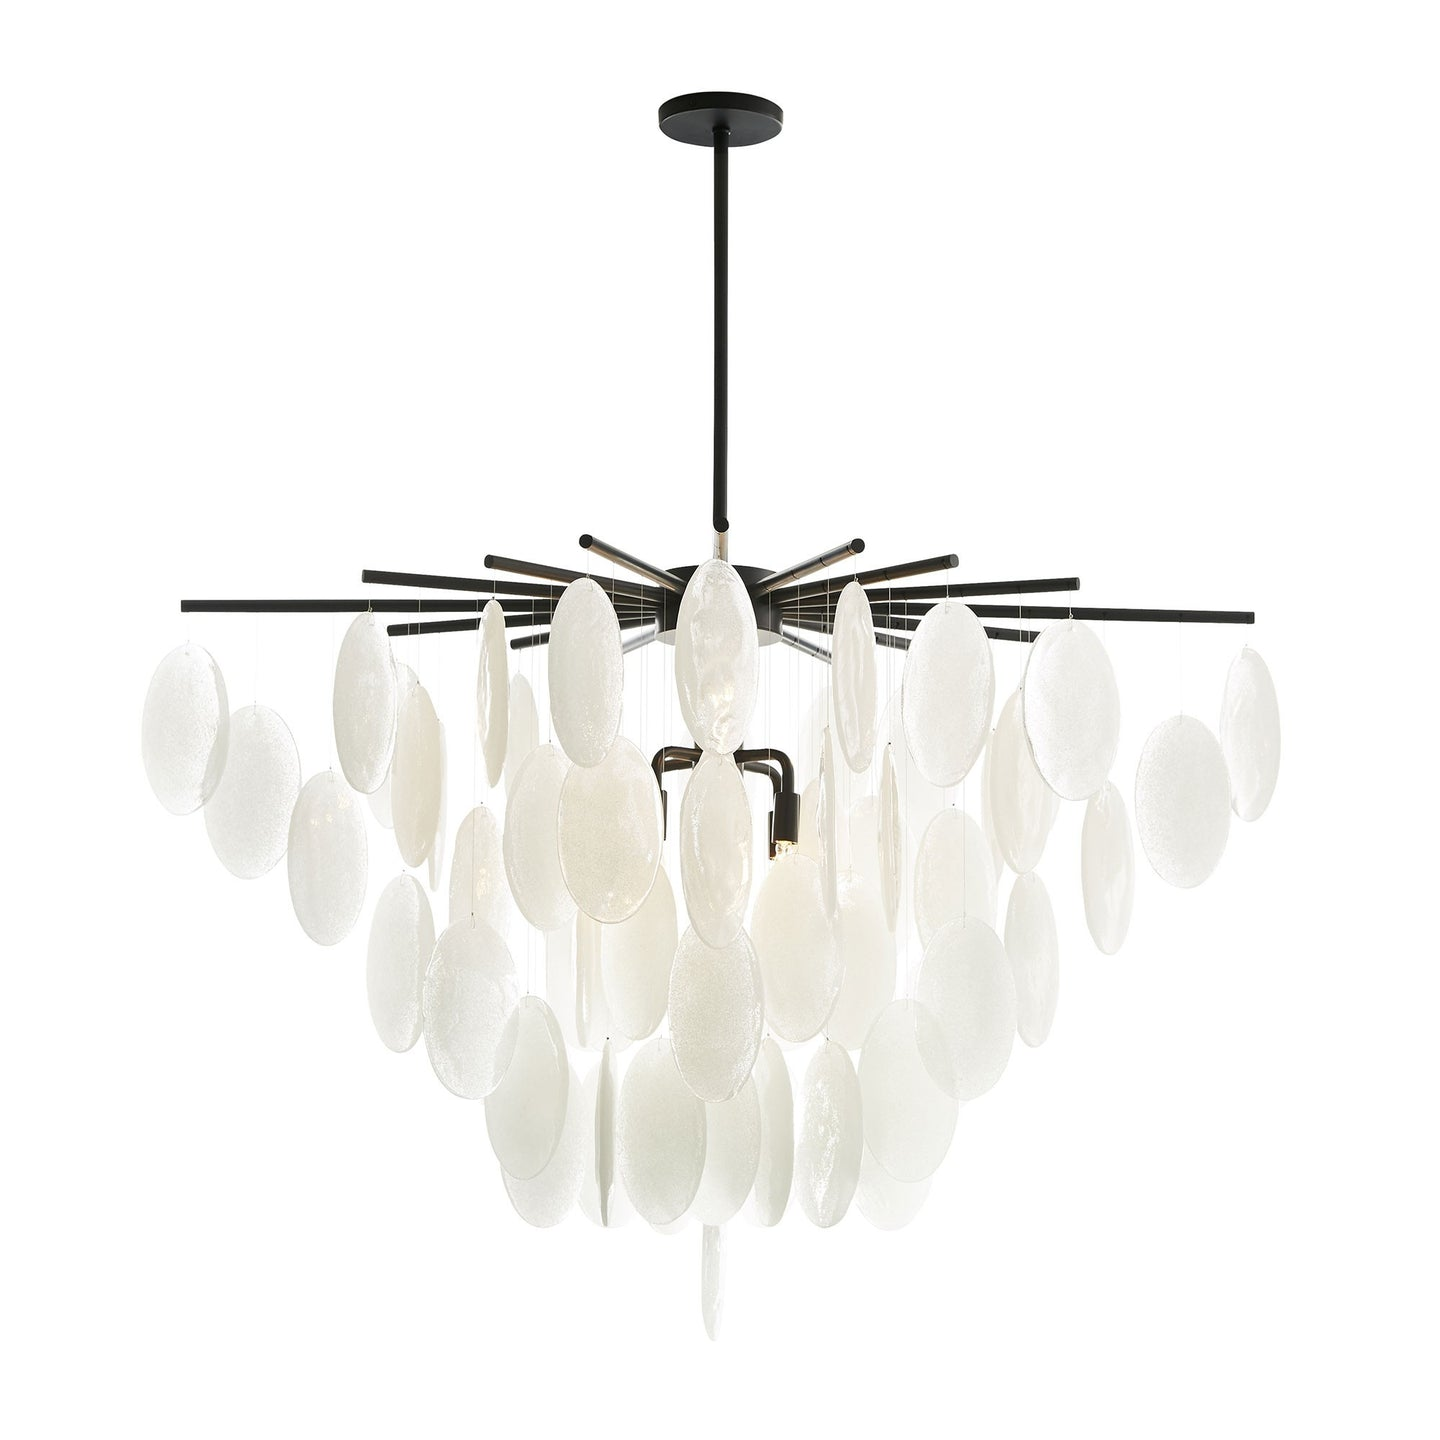 Arteriors home tiffany chandelier arteriors home tiffany chandelier dj89000 chandelier chandeliers foyer chandeliers modern chandelier modern aloadofball Image collections